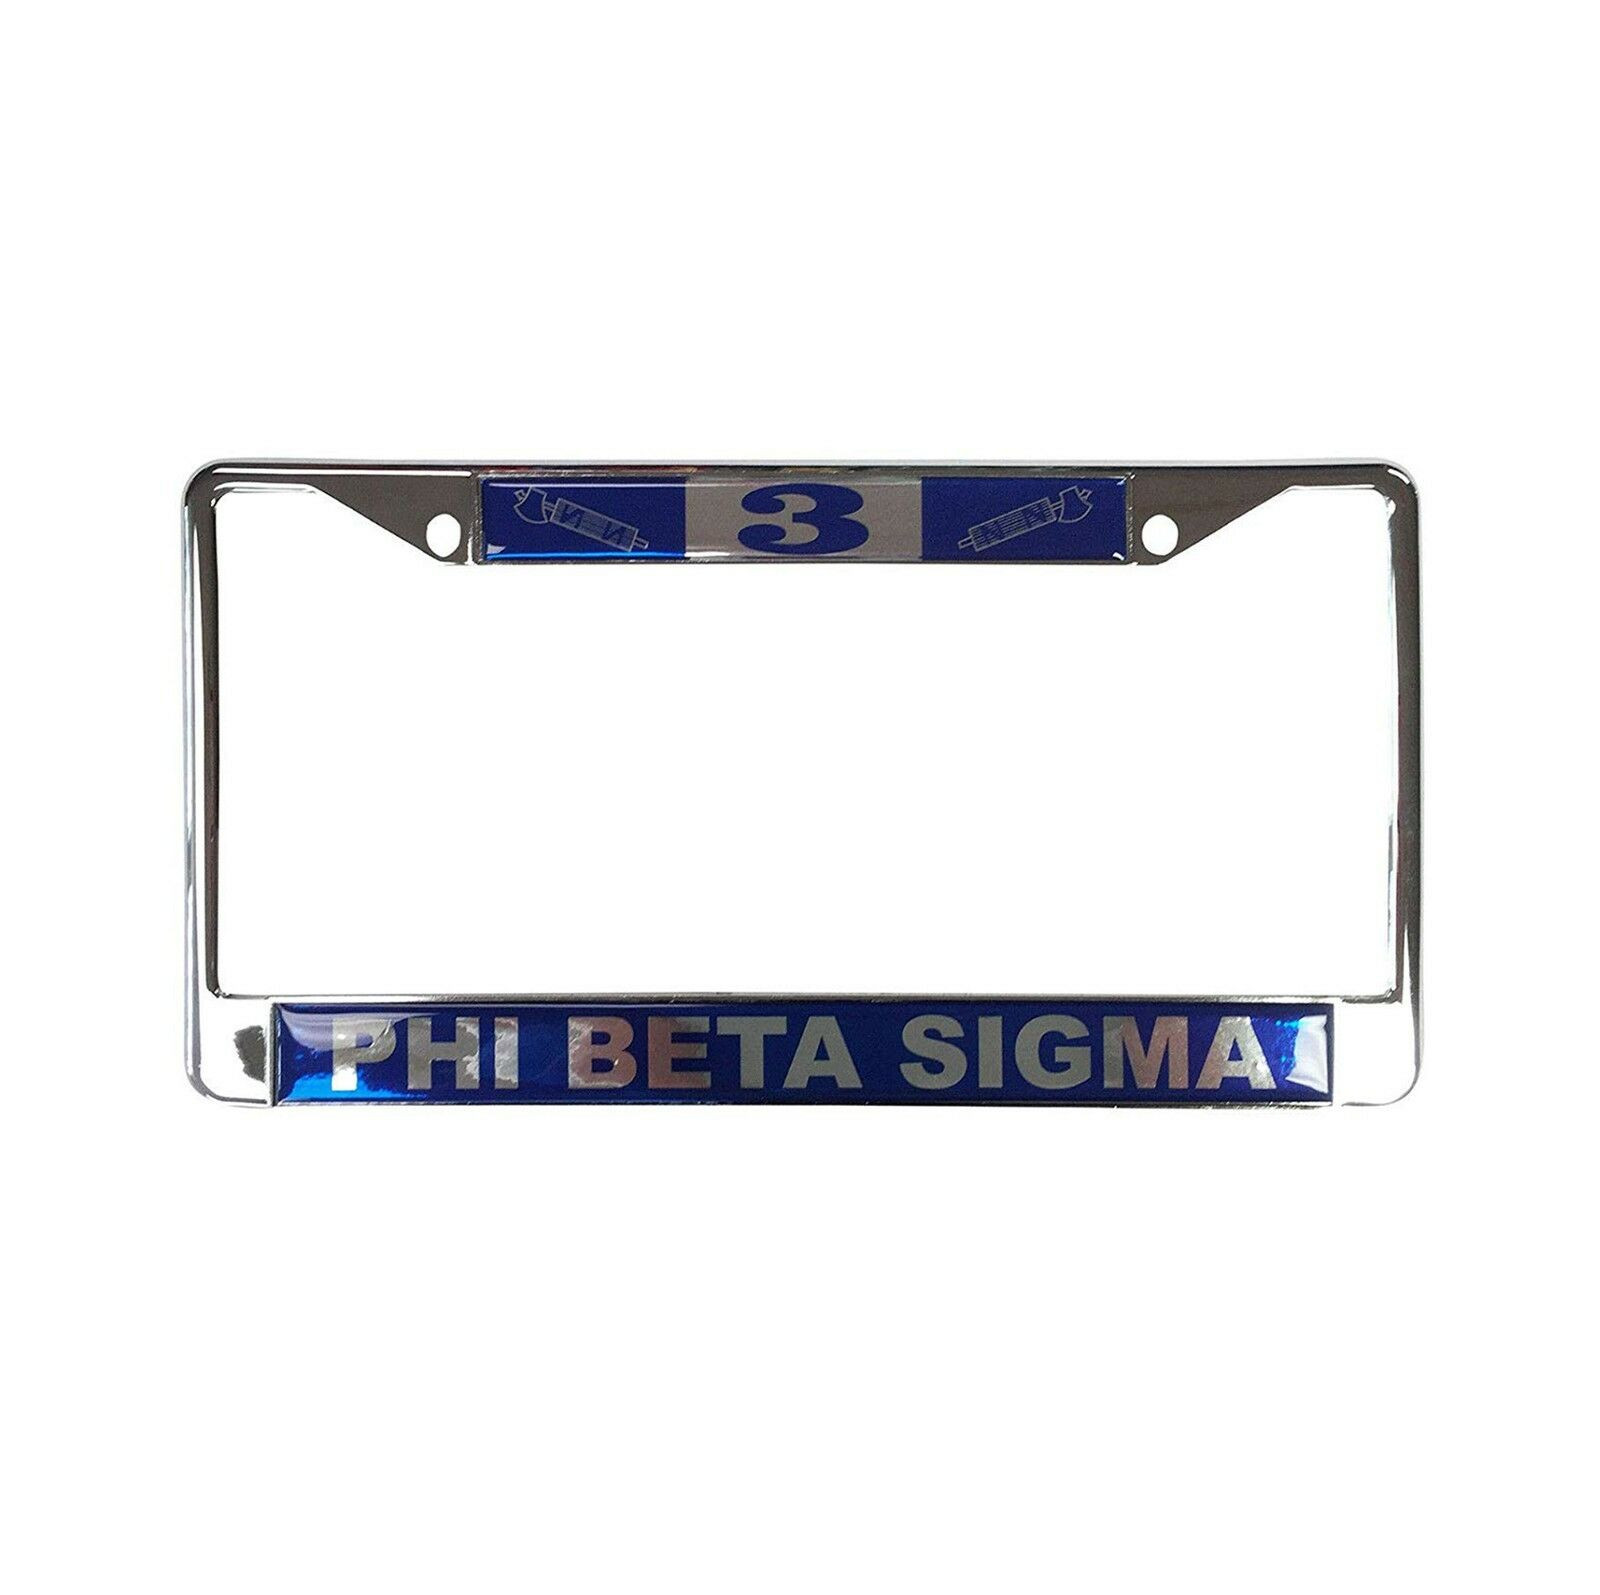 PHI BETA SIGMA #3 Line Number Silver License Plate Frame - $24.99 ...